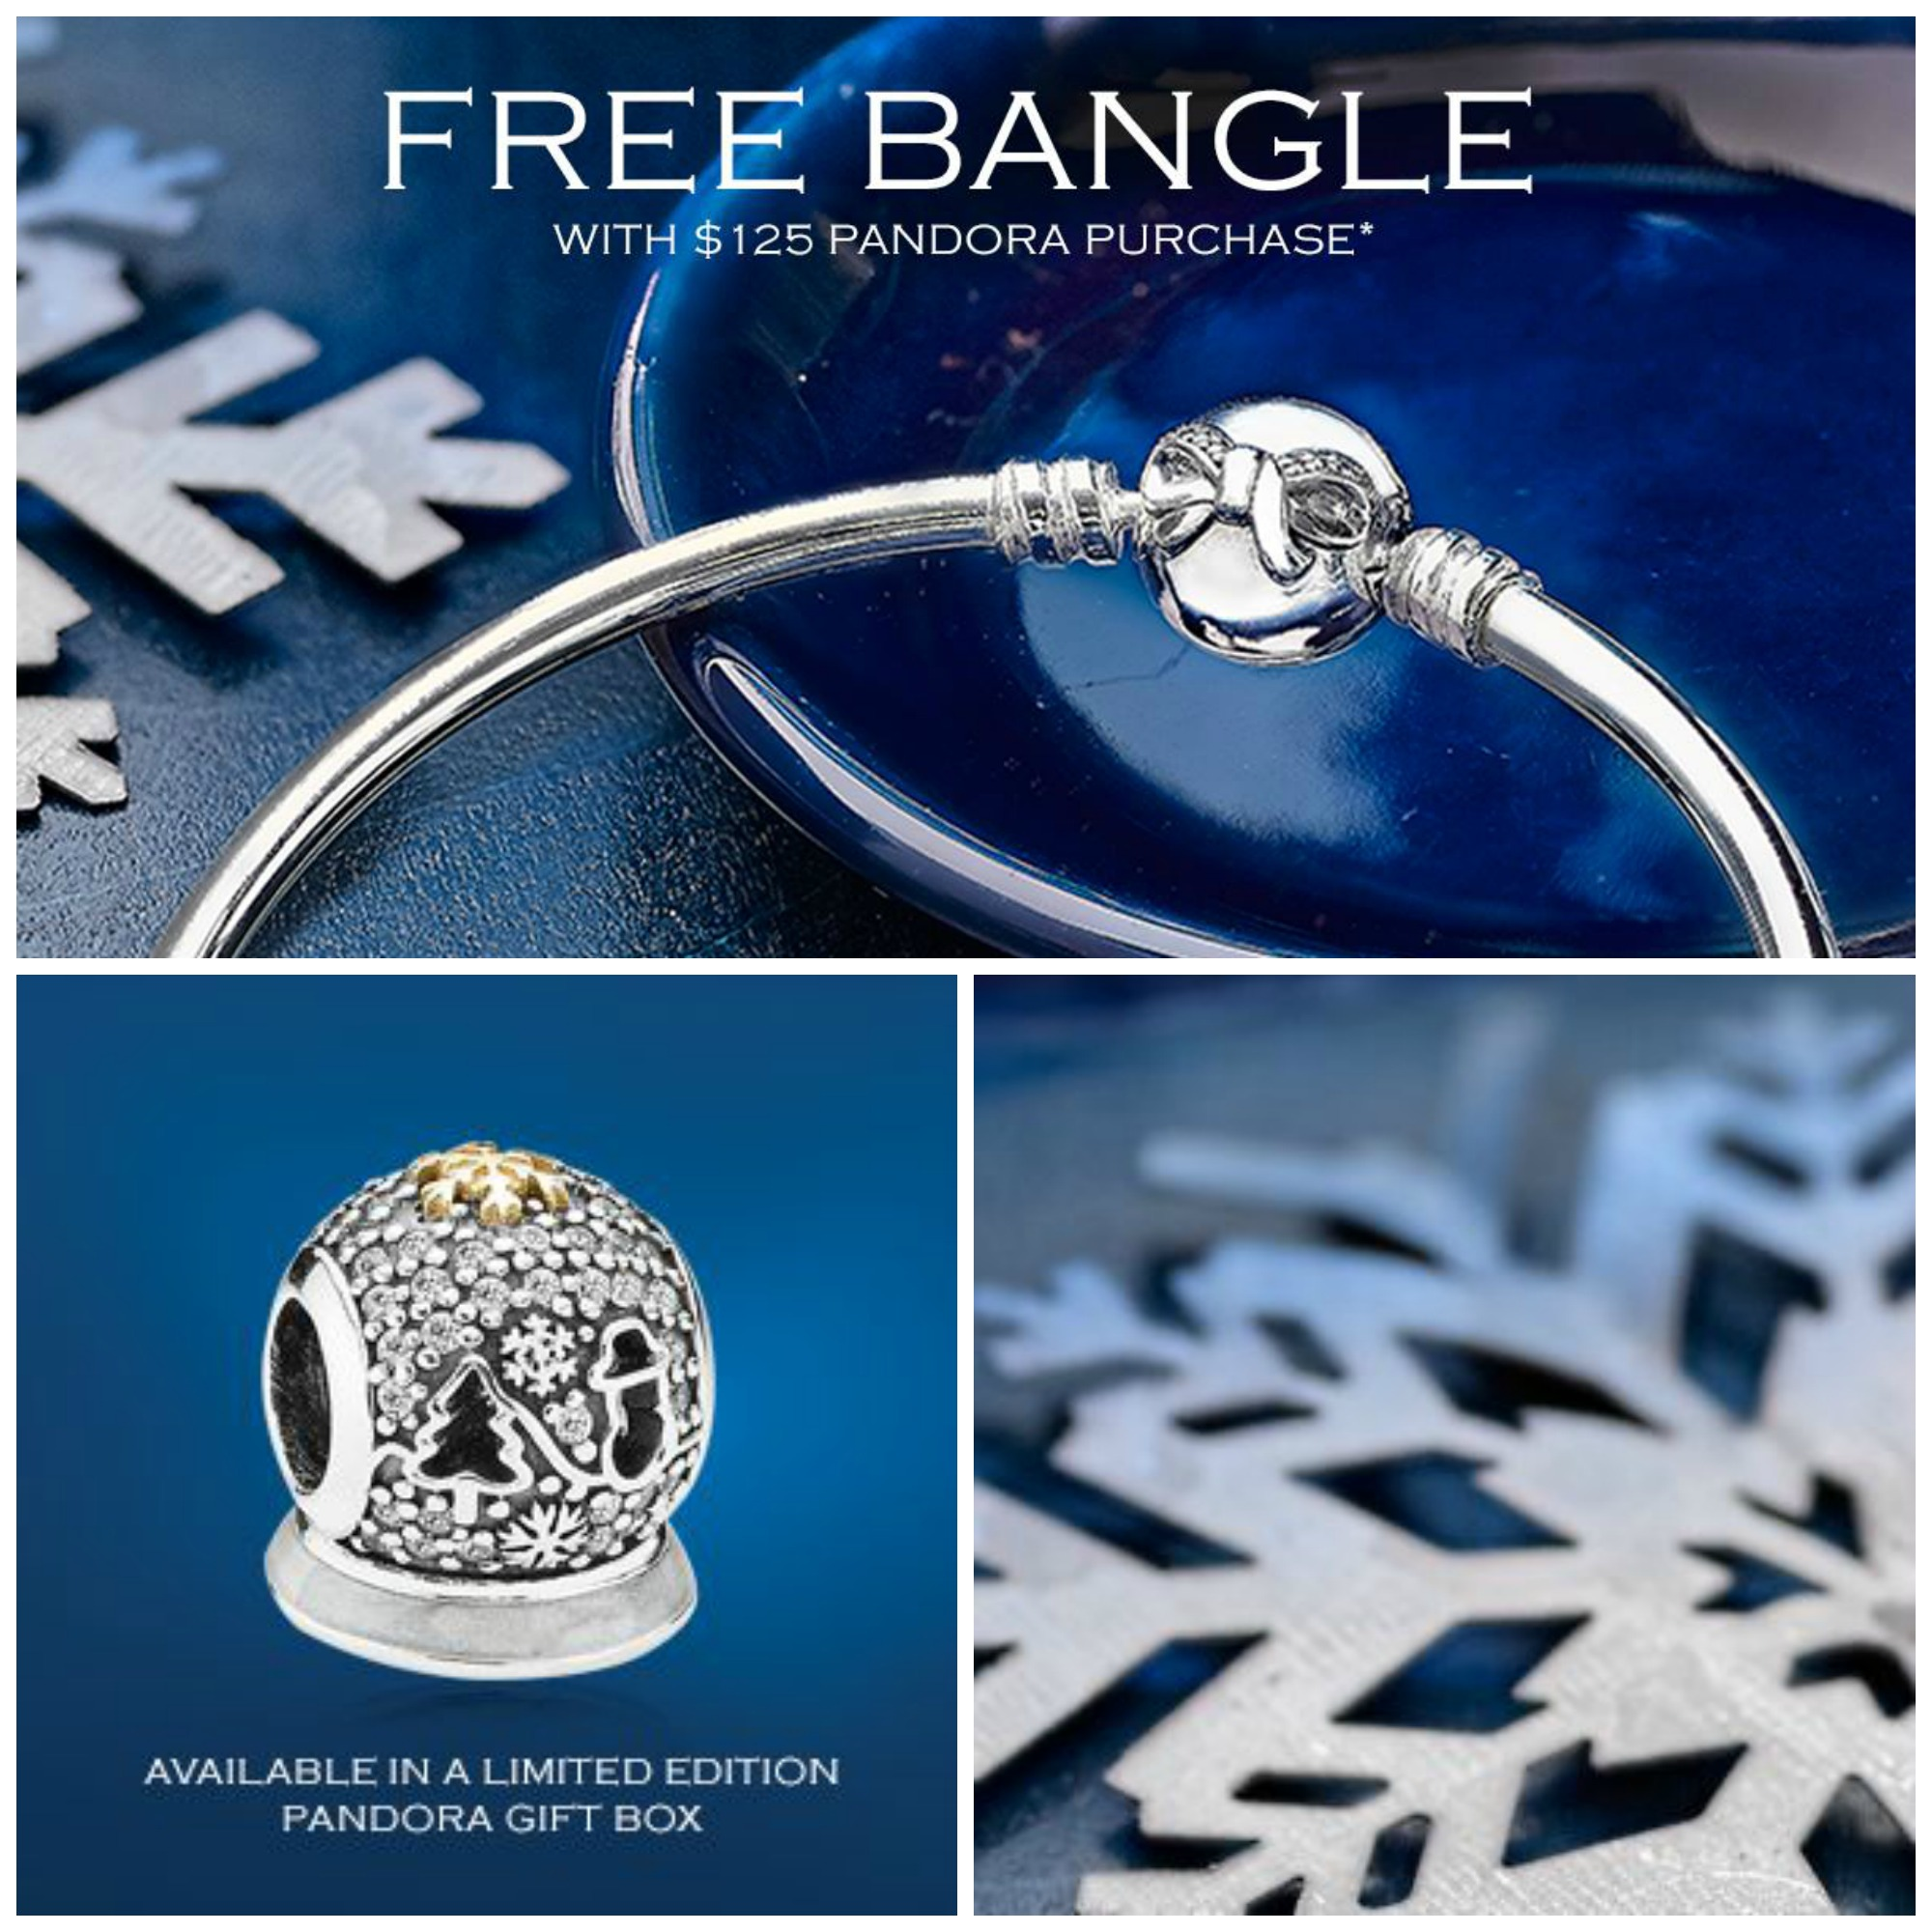 Pandora Black Friday Collage 2015